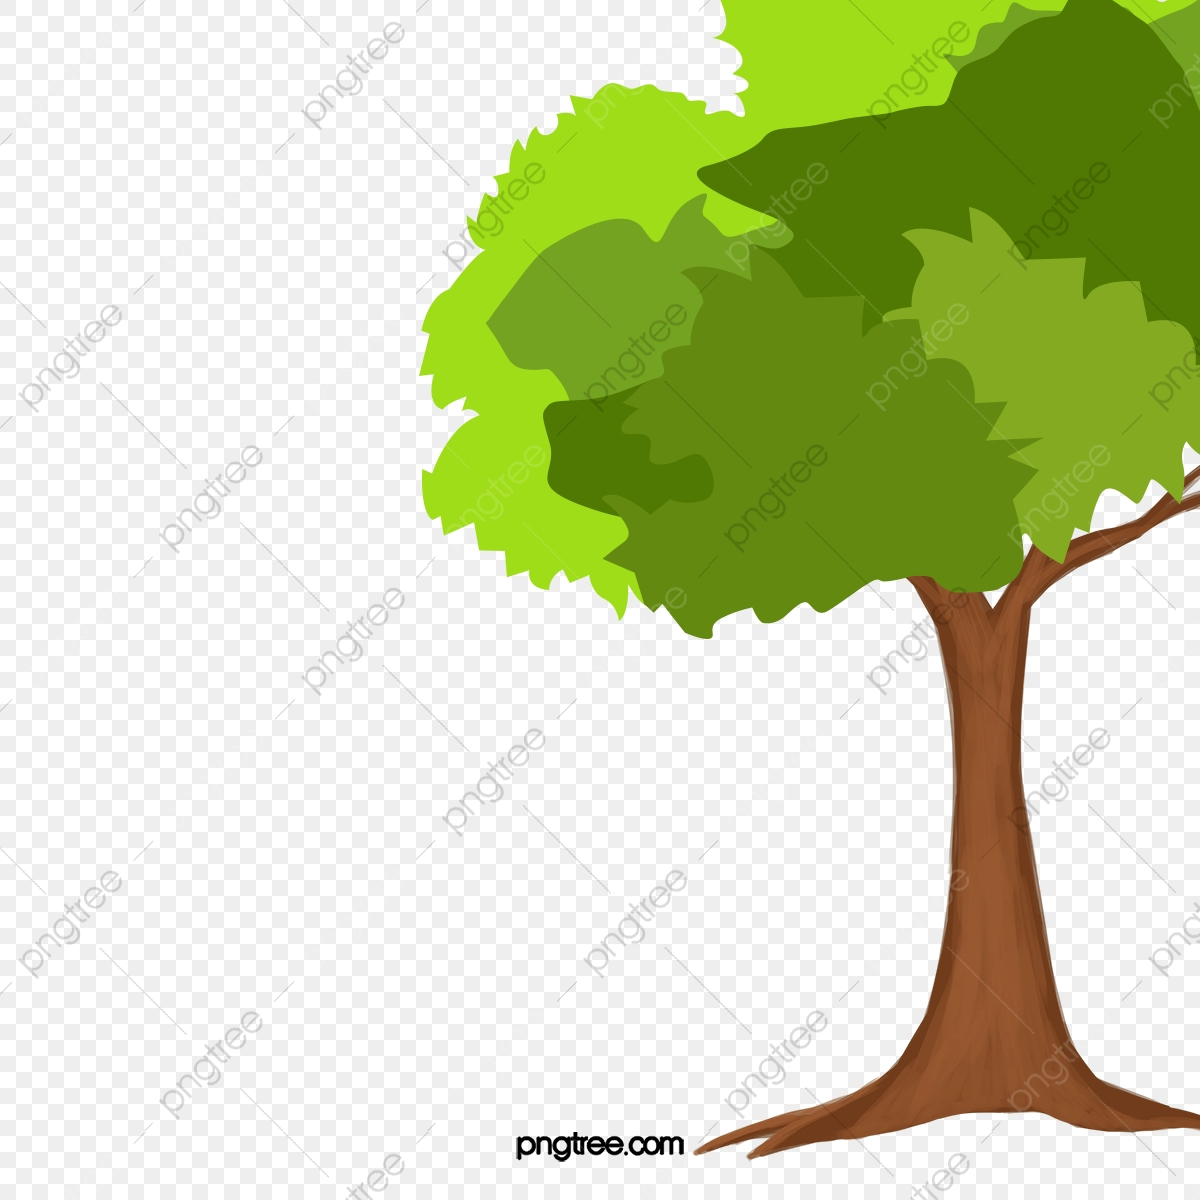 Cartoon Tree Tree Clipart Png Vector Png Transparent Clipart Image And Psd File For Free Download Looking for more cartoon tree png clip art. https pngtree com freepng cartoon tree 1126744 html